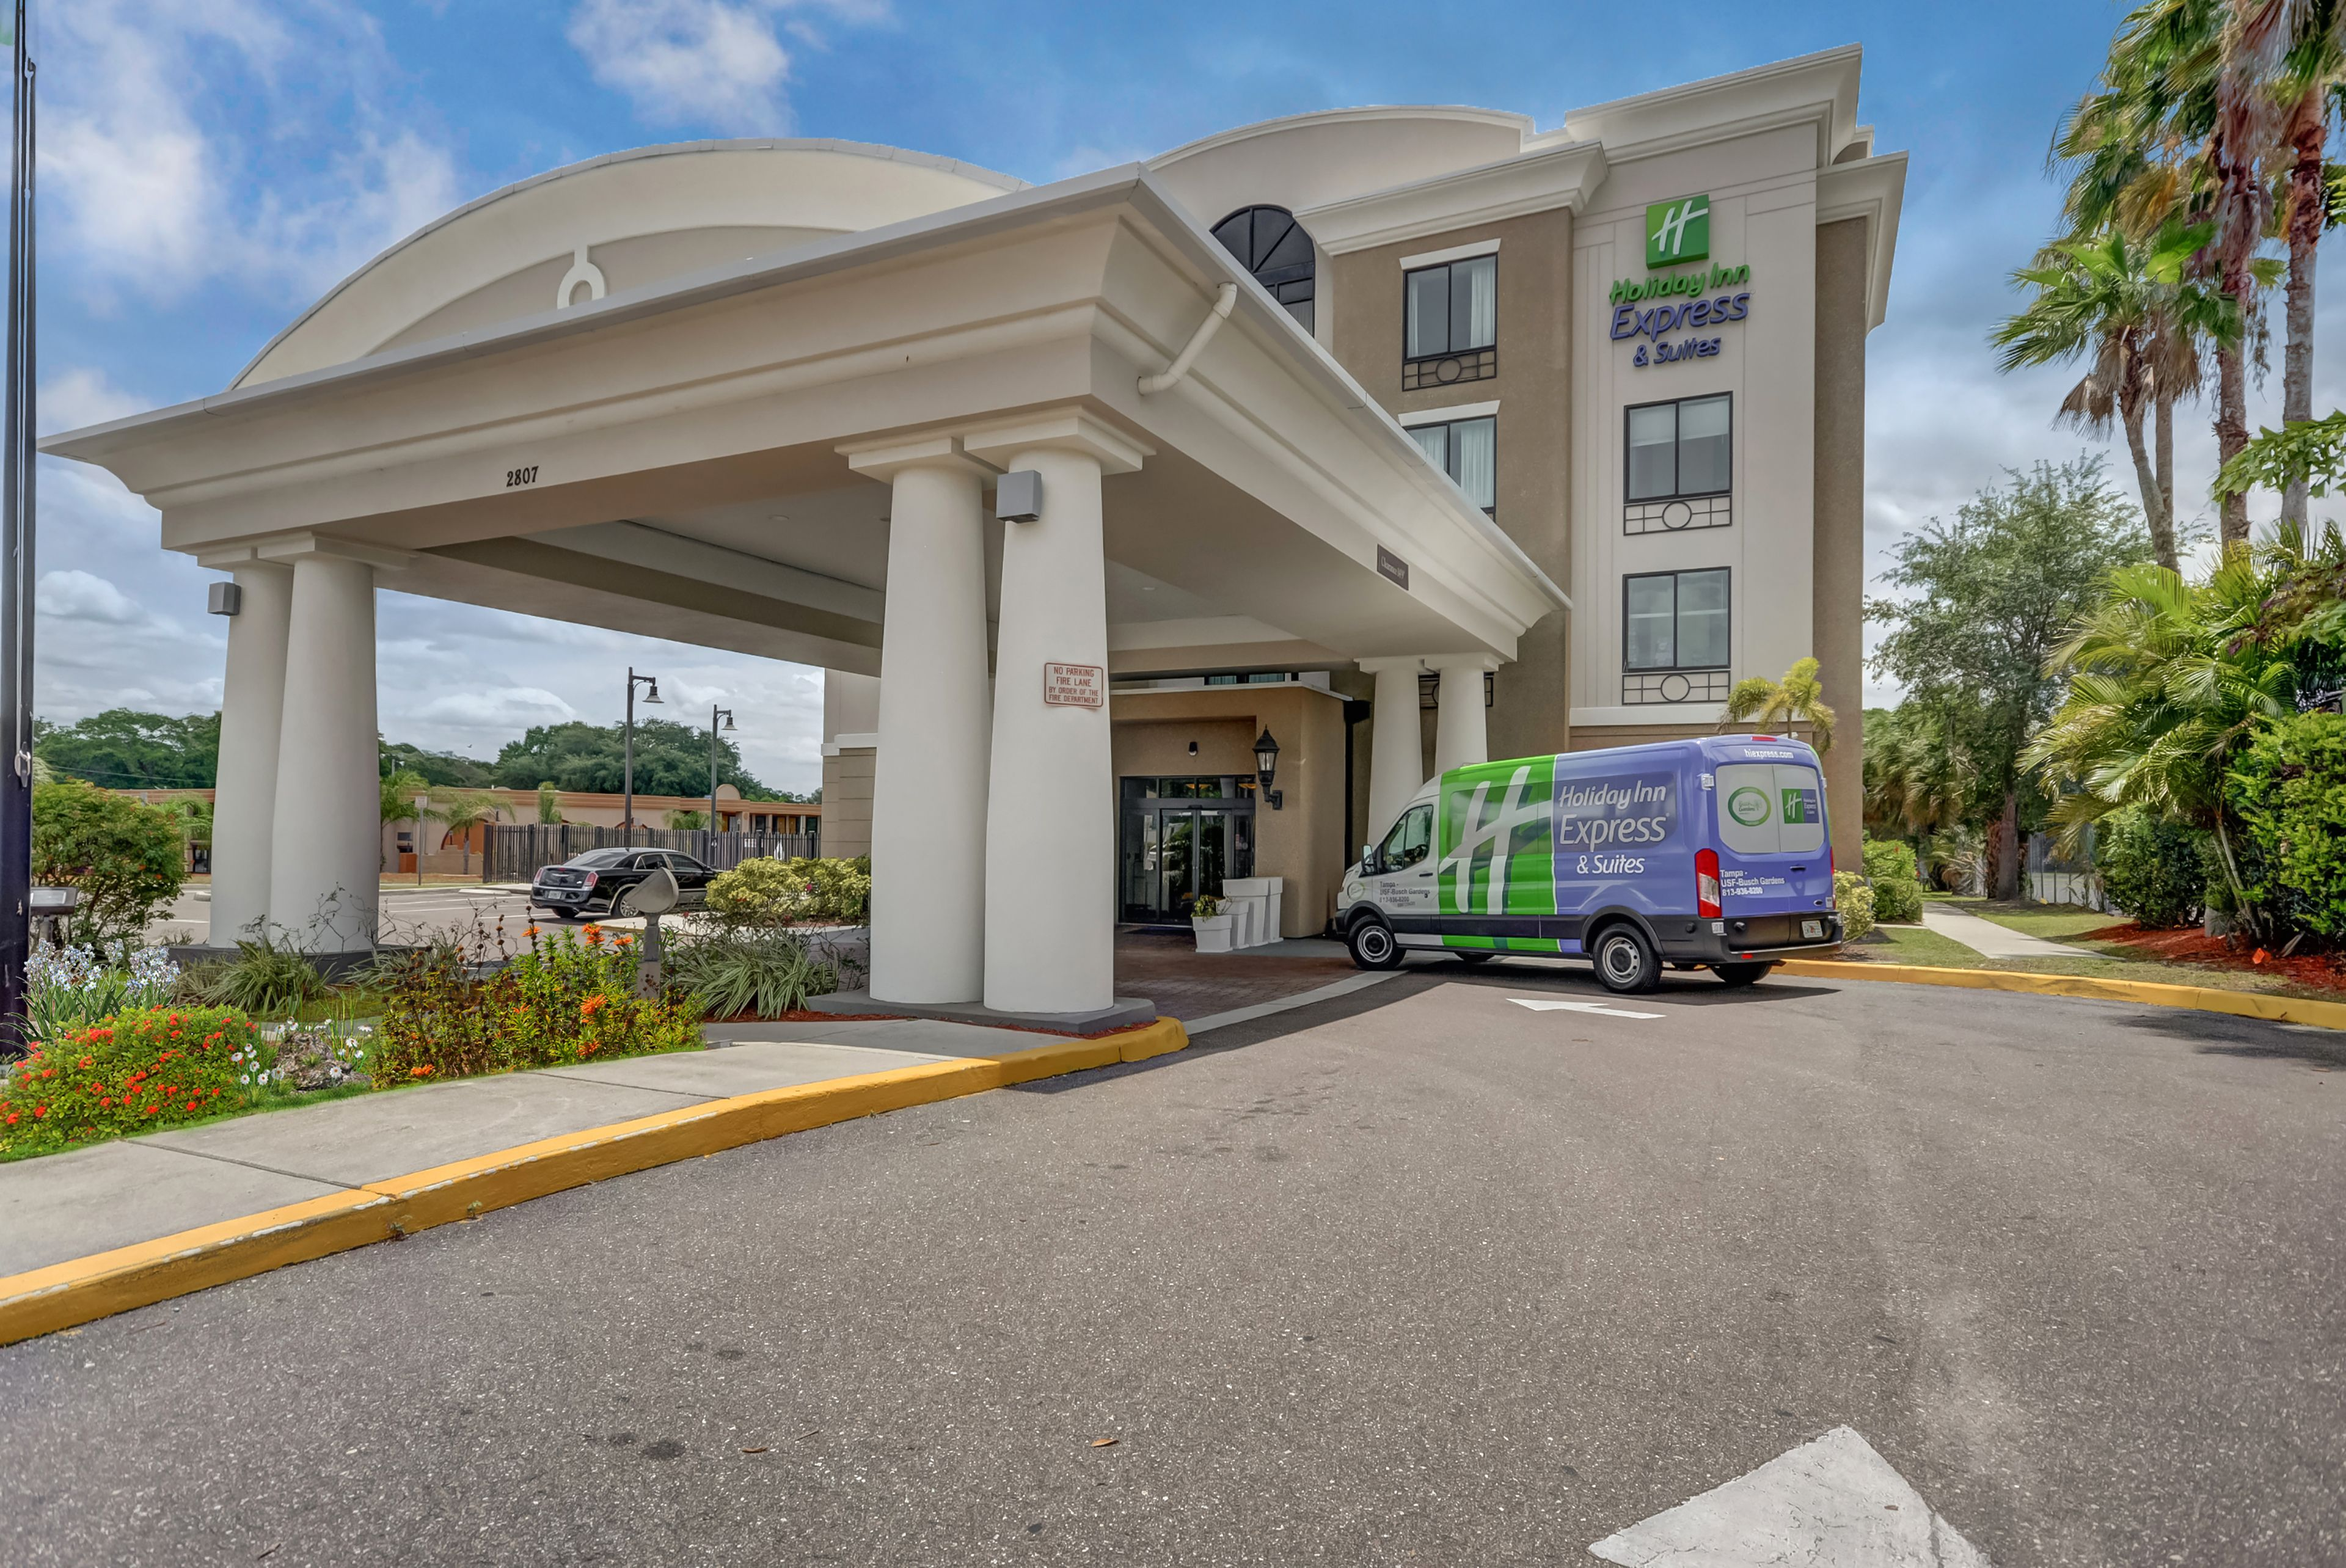 Holiday Inn Express Suites Tampa Northwest Oldsmar Coupons Oldsmar Fl Near Me 8coupons